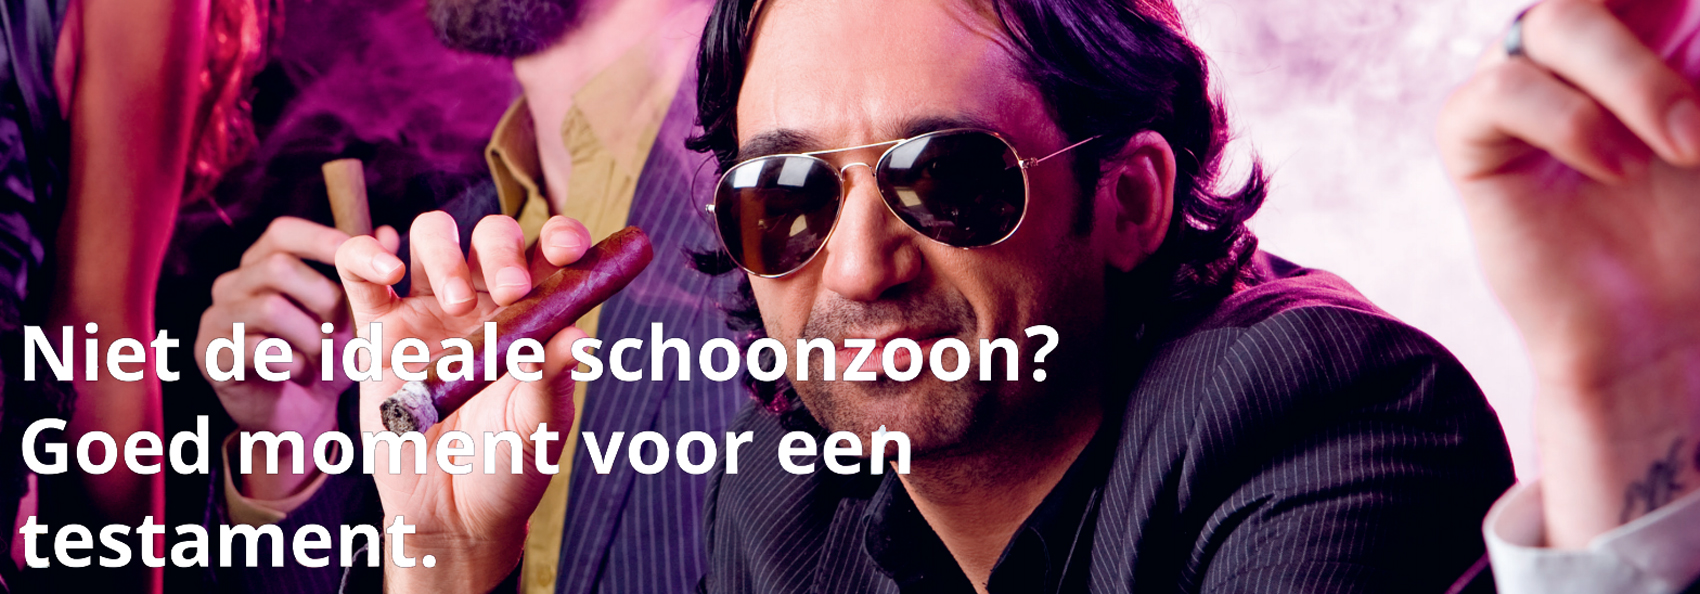 schoonzoon testament